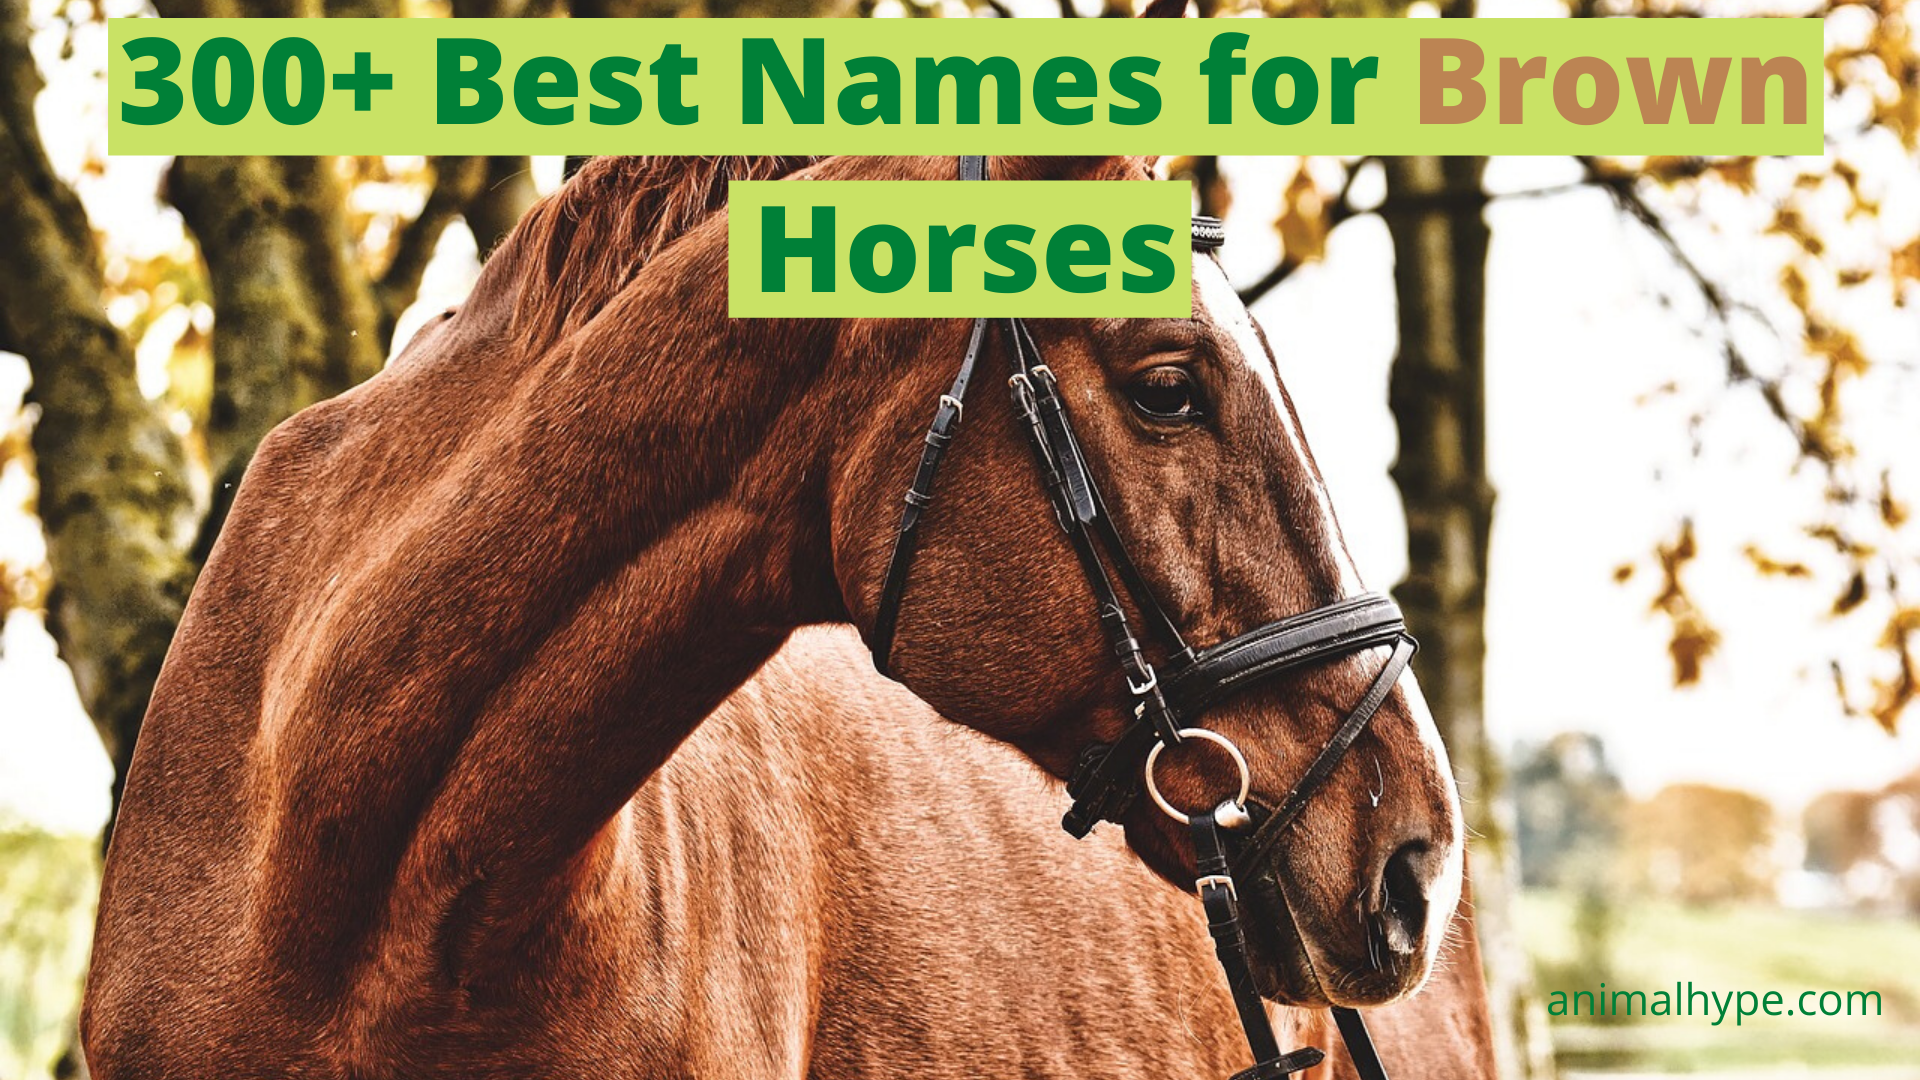 339 Names For Brown Horses Animal Hype